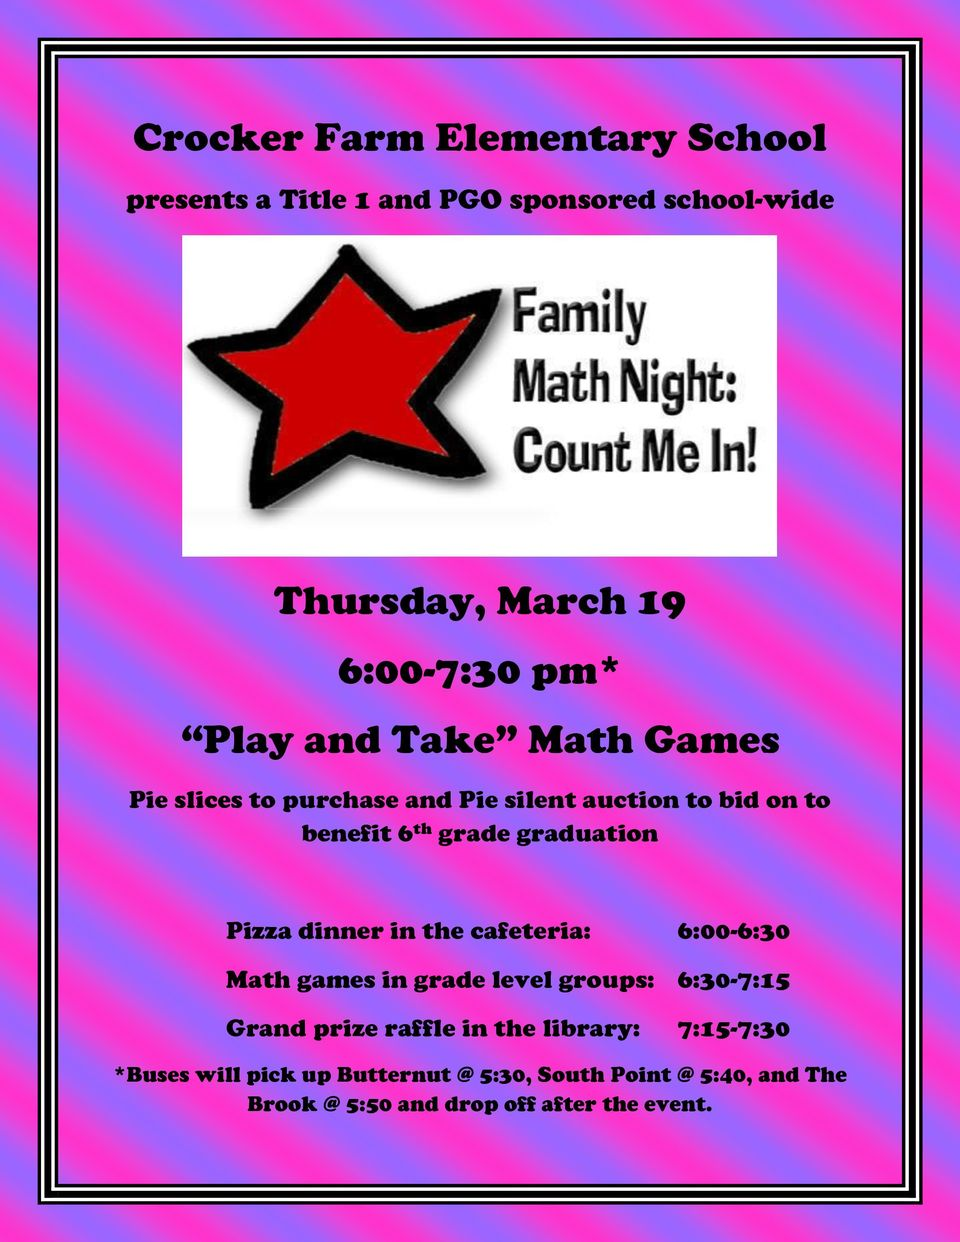 Pizza dinner in the cafeteria: 6:00-6:30 Math games in grade level groups: 6:30-7:15 Grand prize raffle in the